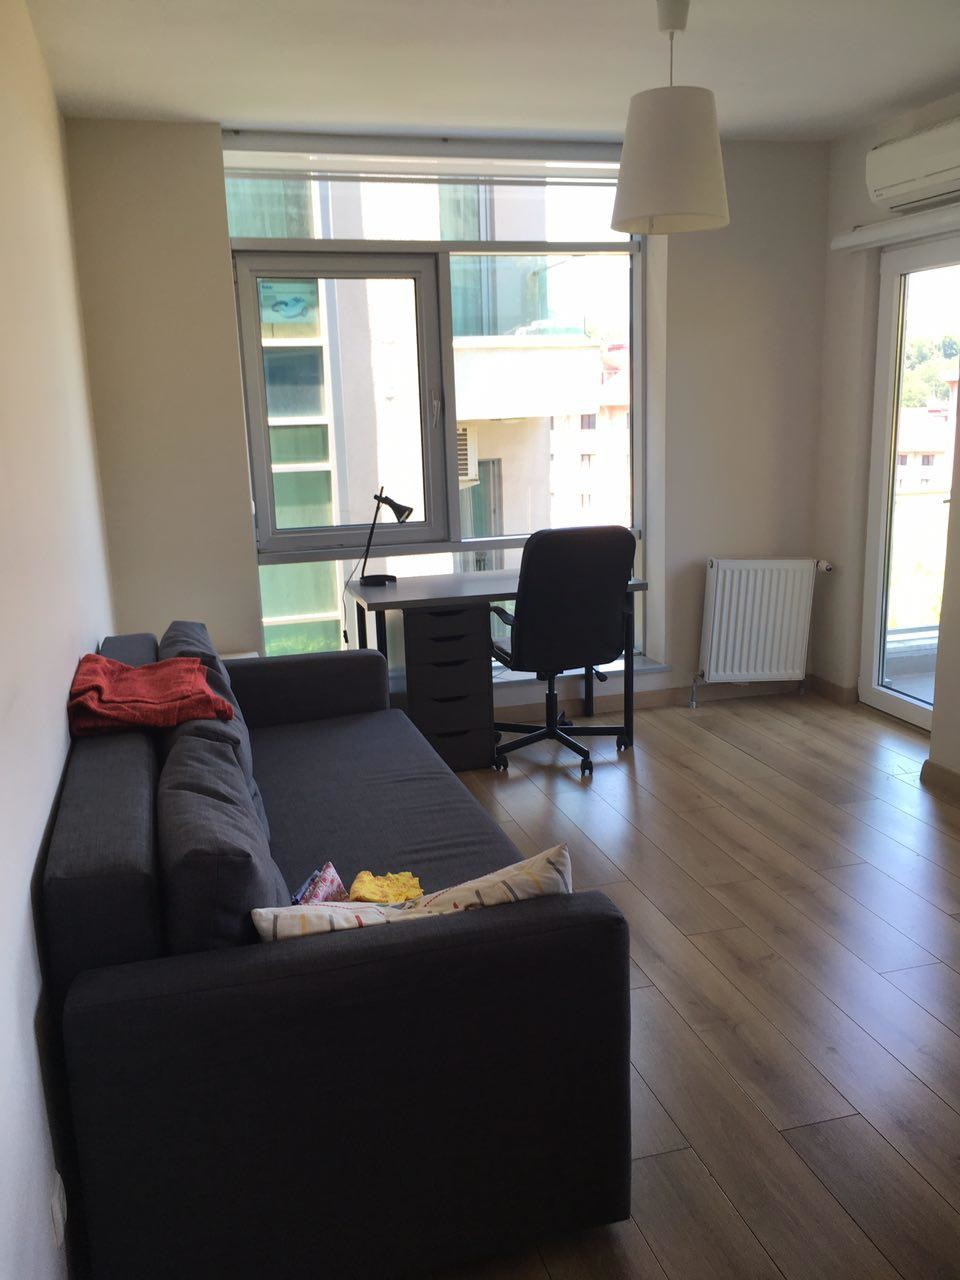 11-apartment-queen-size-bed-near-koc-university-e025453f1bb36ad93ccad7e1cb7cd778